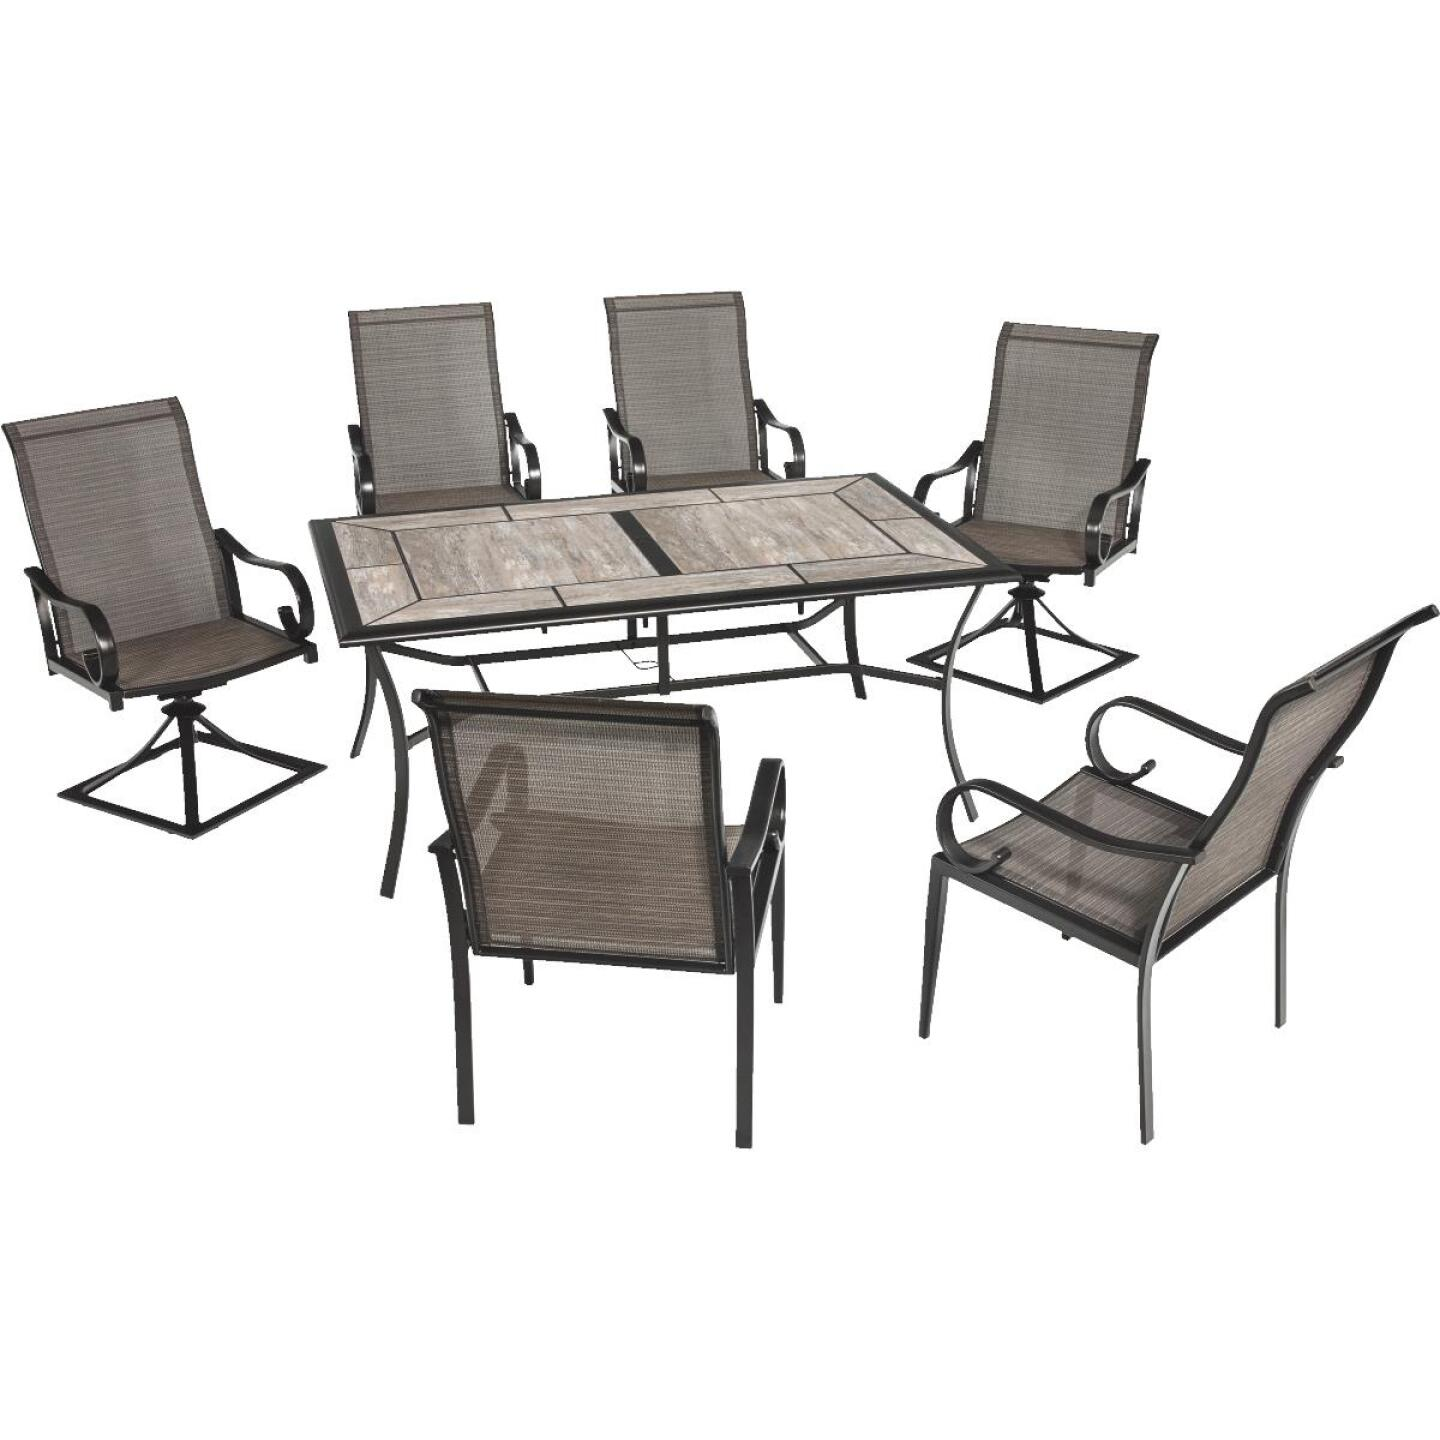 Outdoor Expressions Berkshire 7-Piece Dining Set Image 58